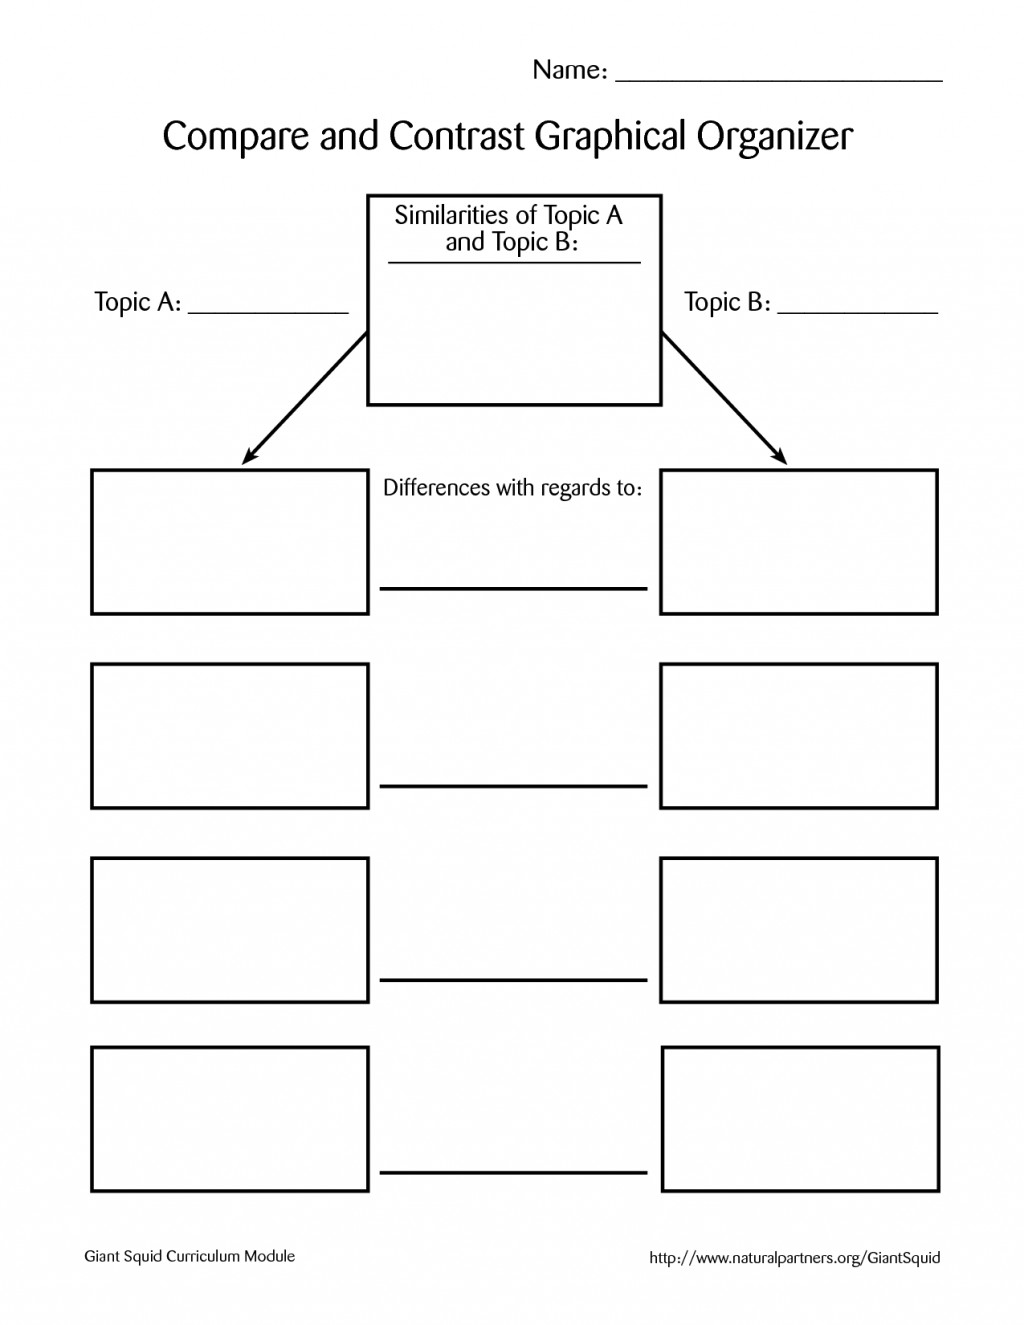 003 Compare And Contrast Essay Graphic Organizer Example Wondrous Middle School Large